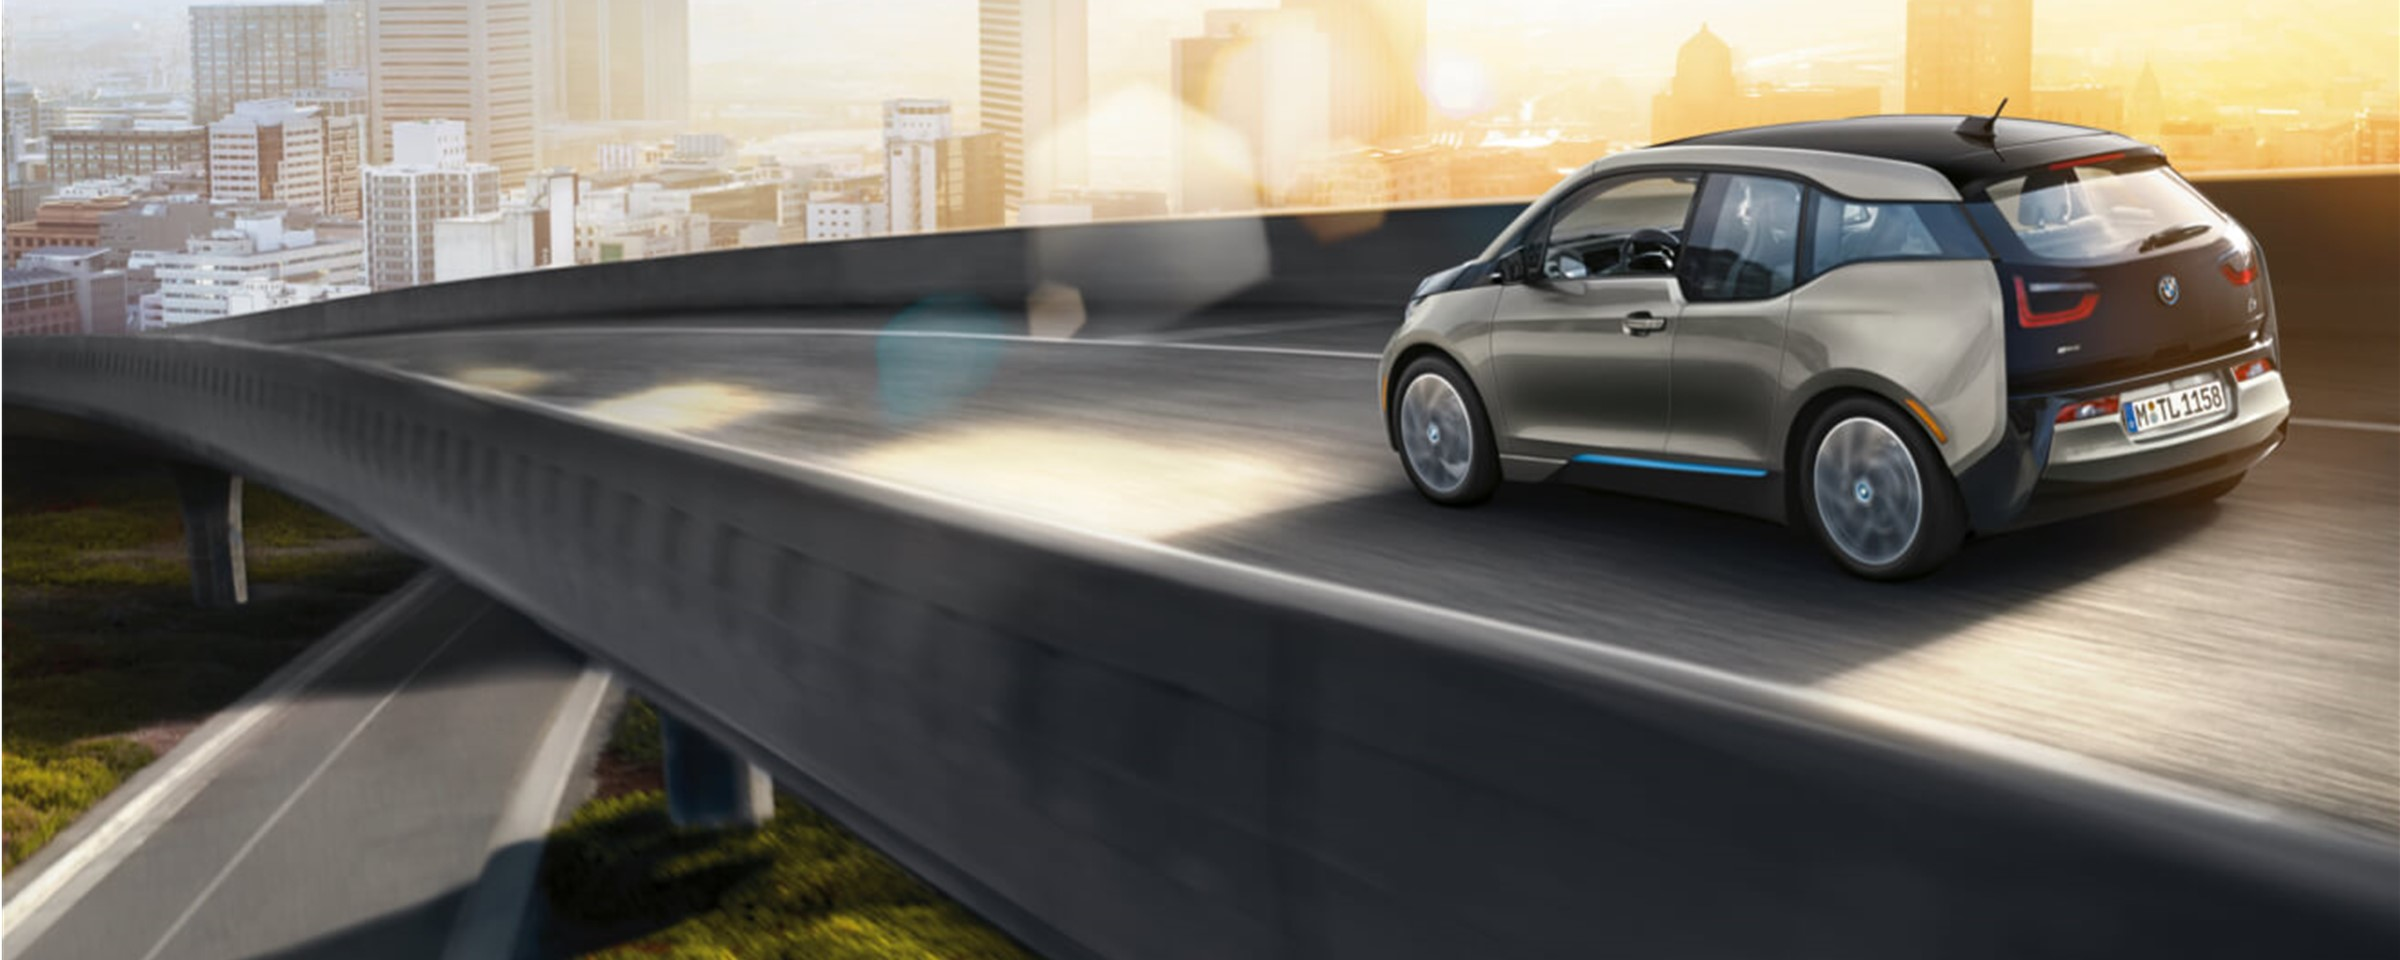 New Bmw Models Qualify For Cav Decals And Hov Lane Use Bmw Of Palm Springs Blog